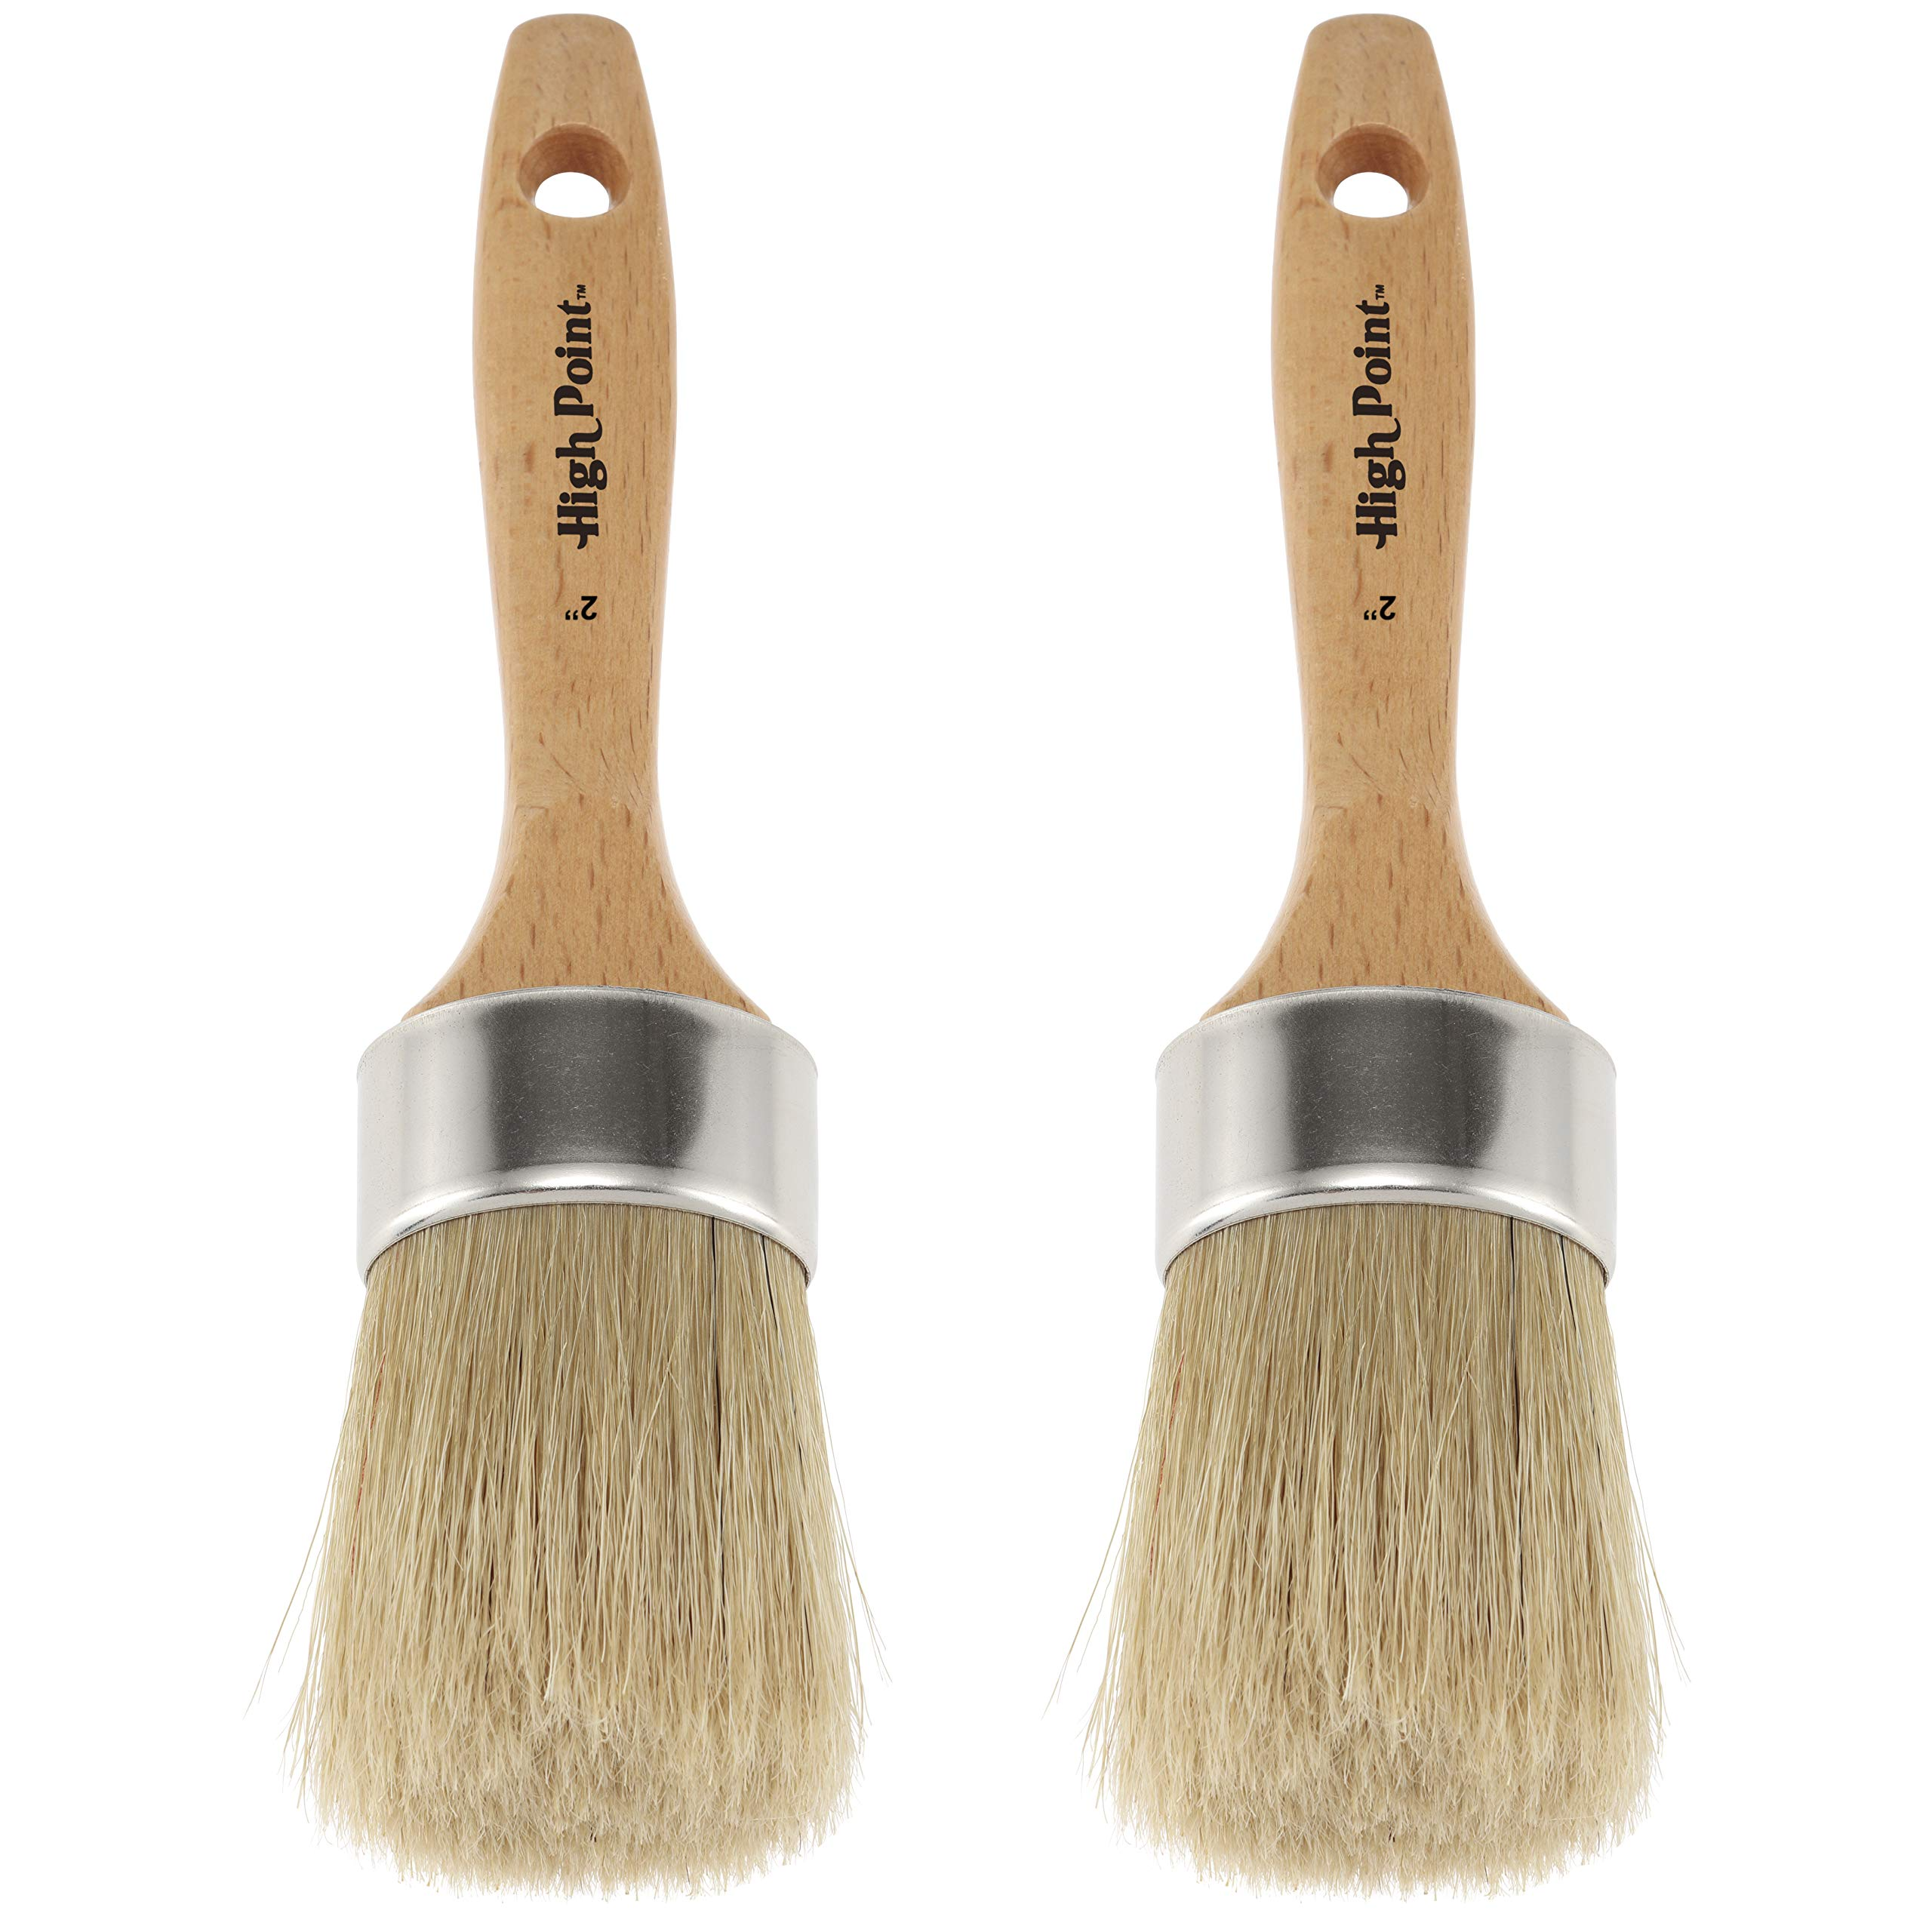 Large 2-in-1 Round Chalk & Wax Finishing Brush | Professional Quality for All Fine Art, Hobby & Chalk Paints, Faux Finishing, Stenciling & Wax Finishing [2'' x 2.36'' Brush Hair] - Double Pack by Creative Mark